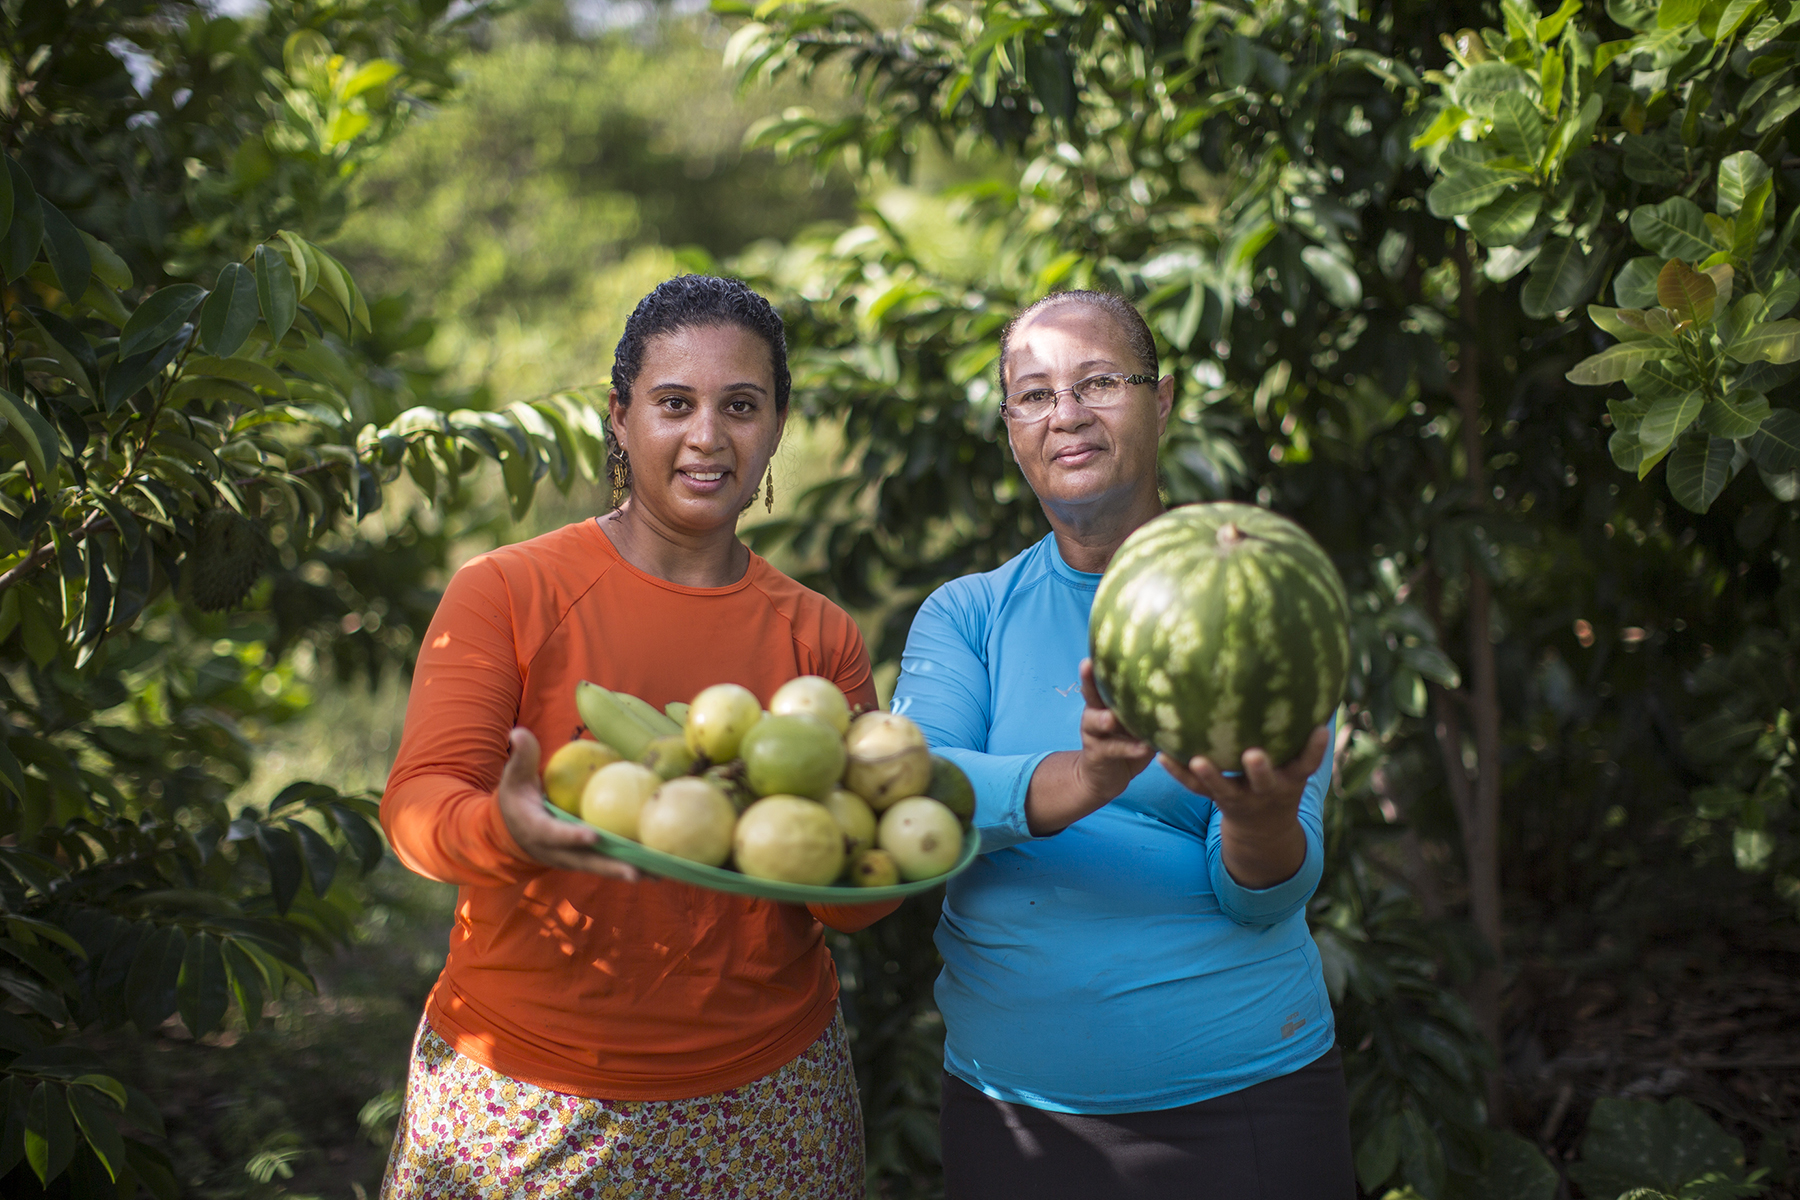 Two women side by side, surrounded by dark green leafy bushes and trees. The woman on the left has dark eyes and dark hair and wears an orange blouse with a printed skirt. She holds a tray with a variety of fruits. Next to her is a lady with white hair wearing glasses and a blue blouse with a black skirt. The older woman holds a medium-size watermelon.